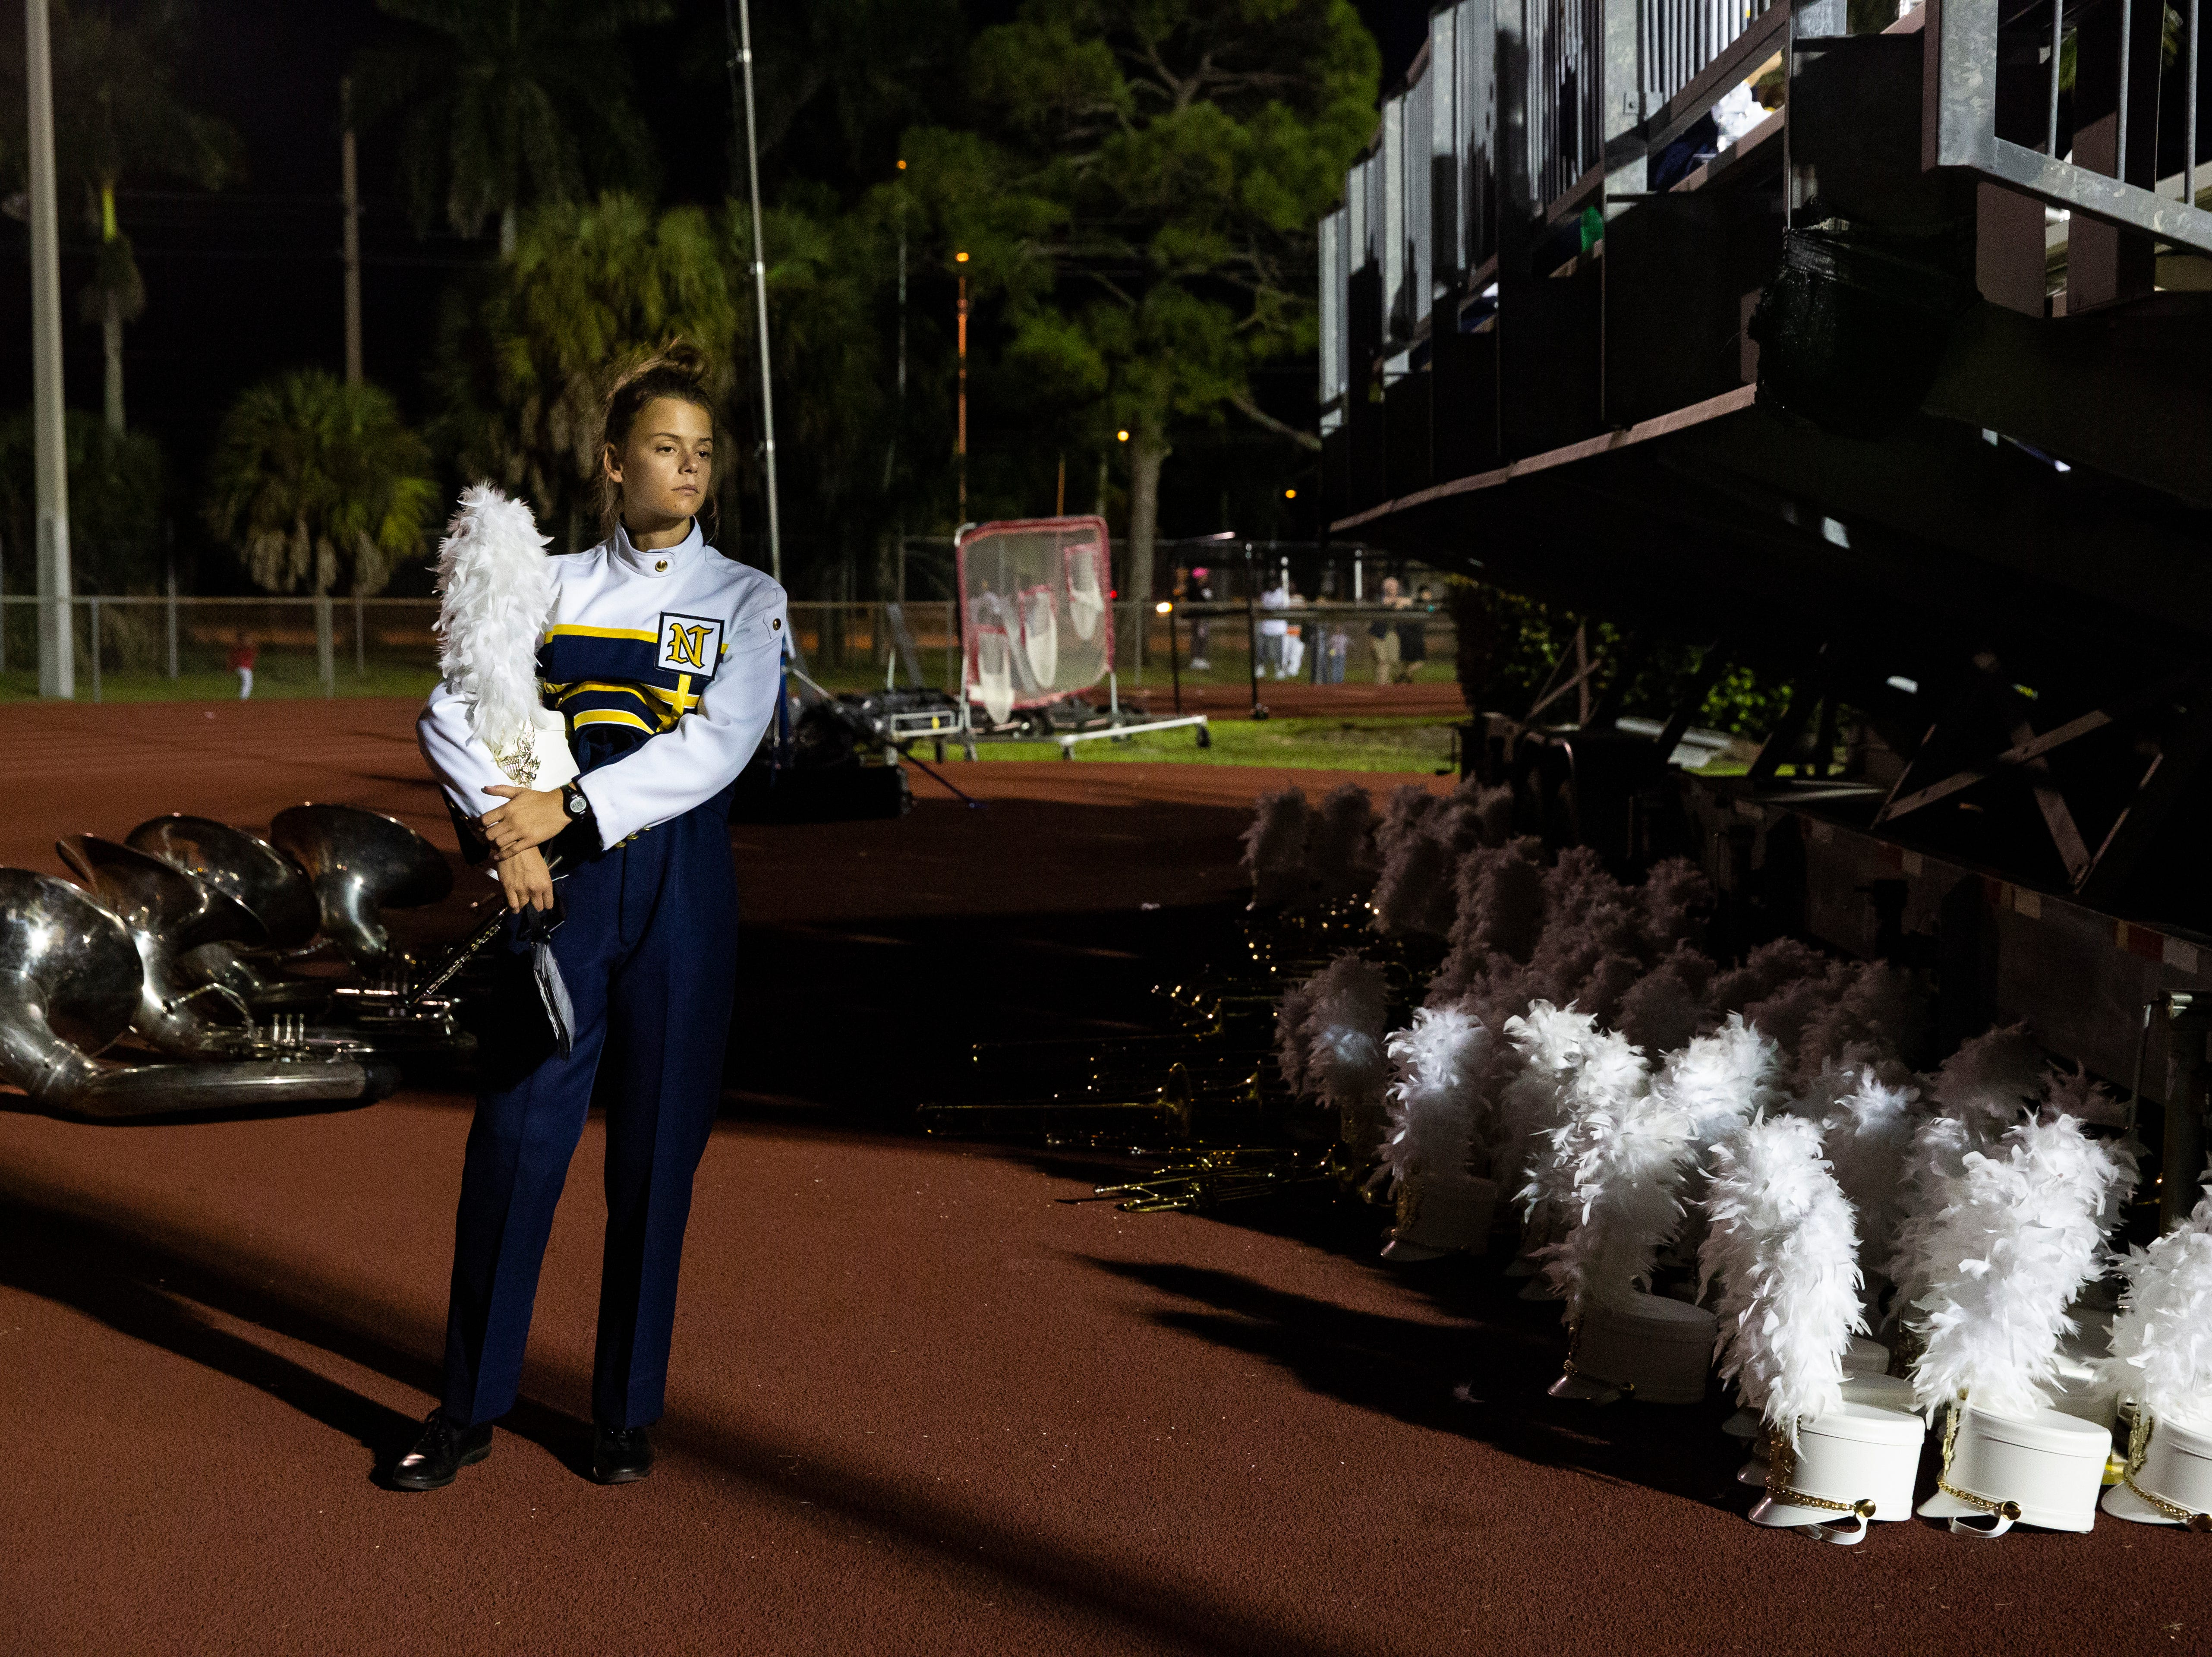 """Lydia Cartwright, 17, of the Naples High School marching band, stands quietly after their half-time performance. """"Hopefully we can finish strong,"""" Cartwright said. The Naples High School lost the Class 6A state semifinals against Miami-Northwestern Senior High Friday evening, November 30, 2018, at Naples High School in Naples."""